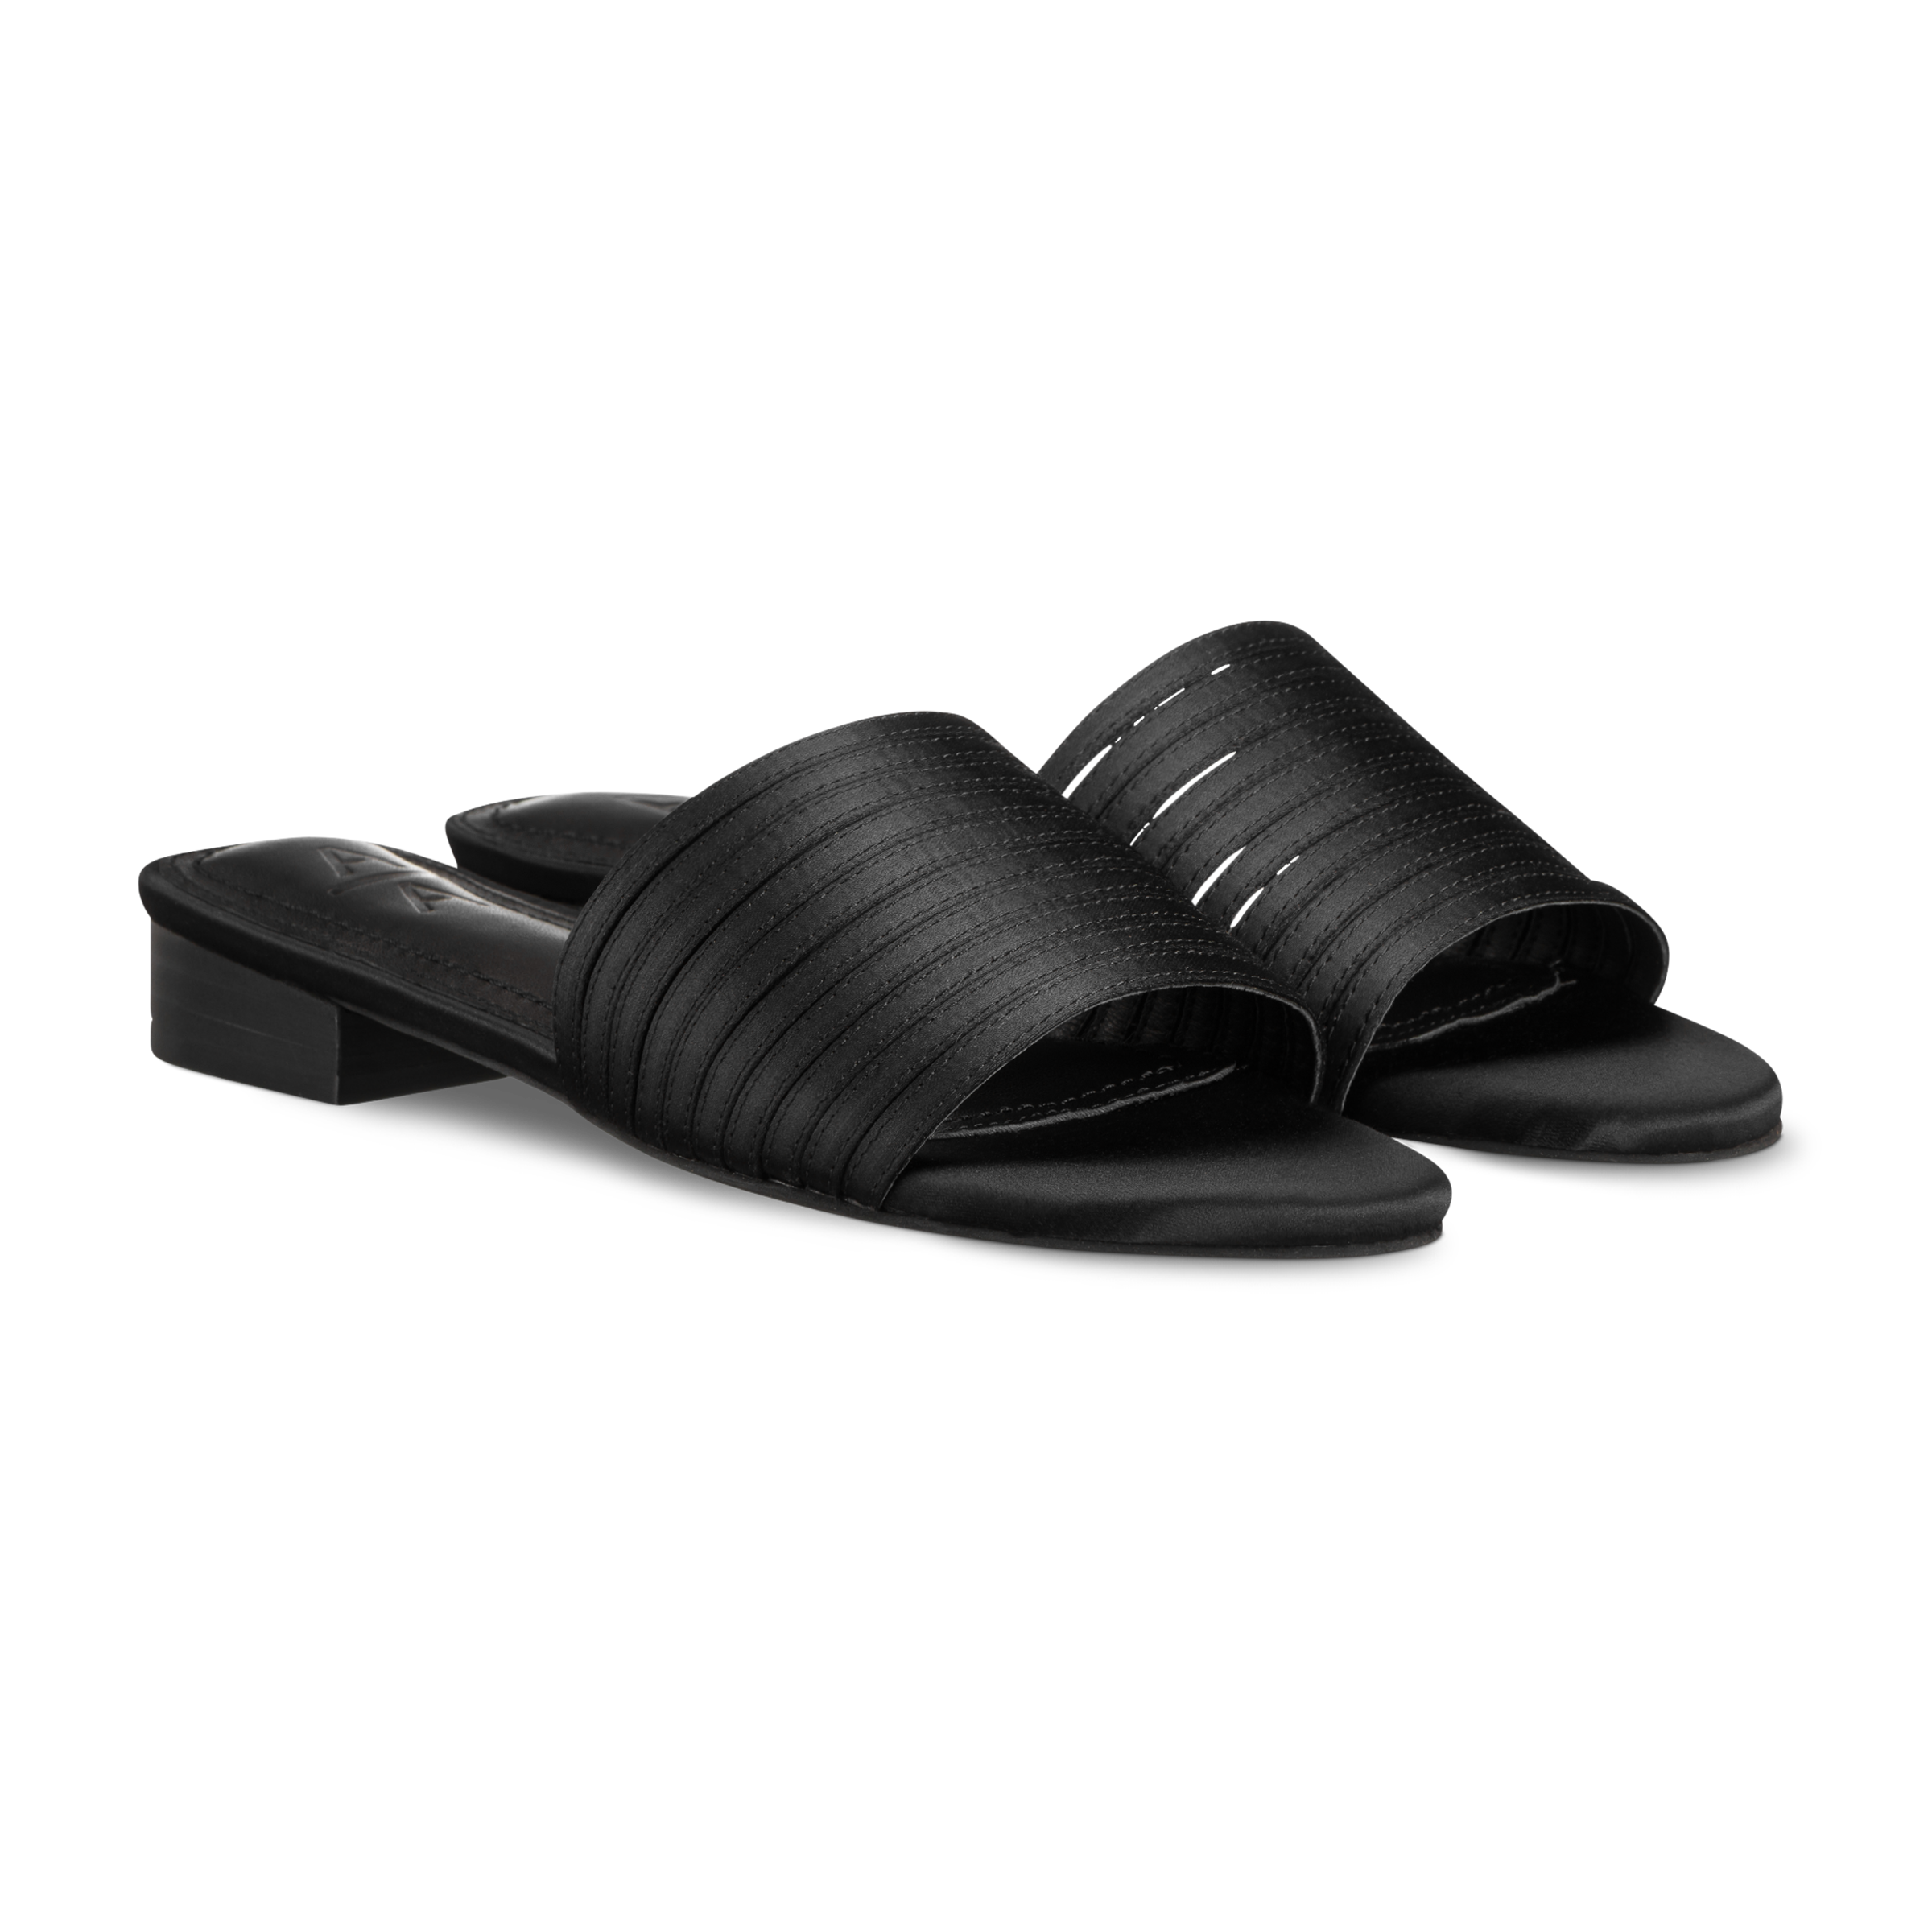 Footwear product picture